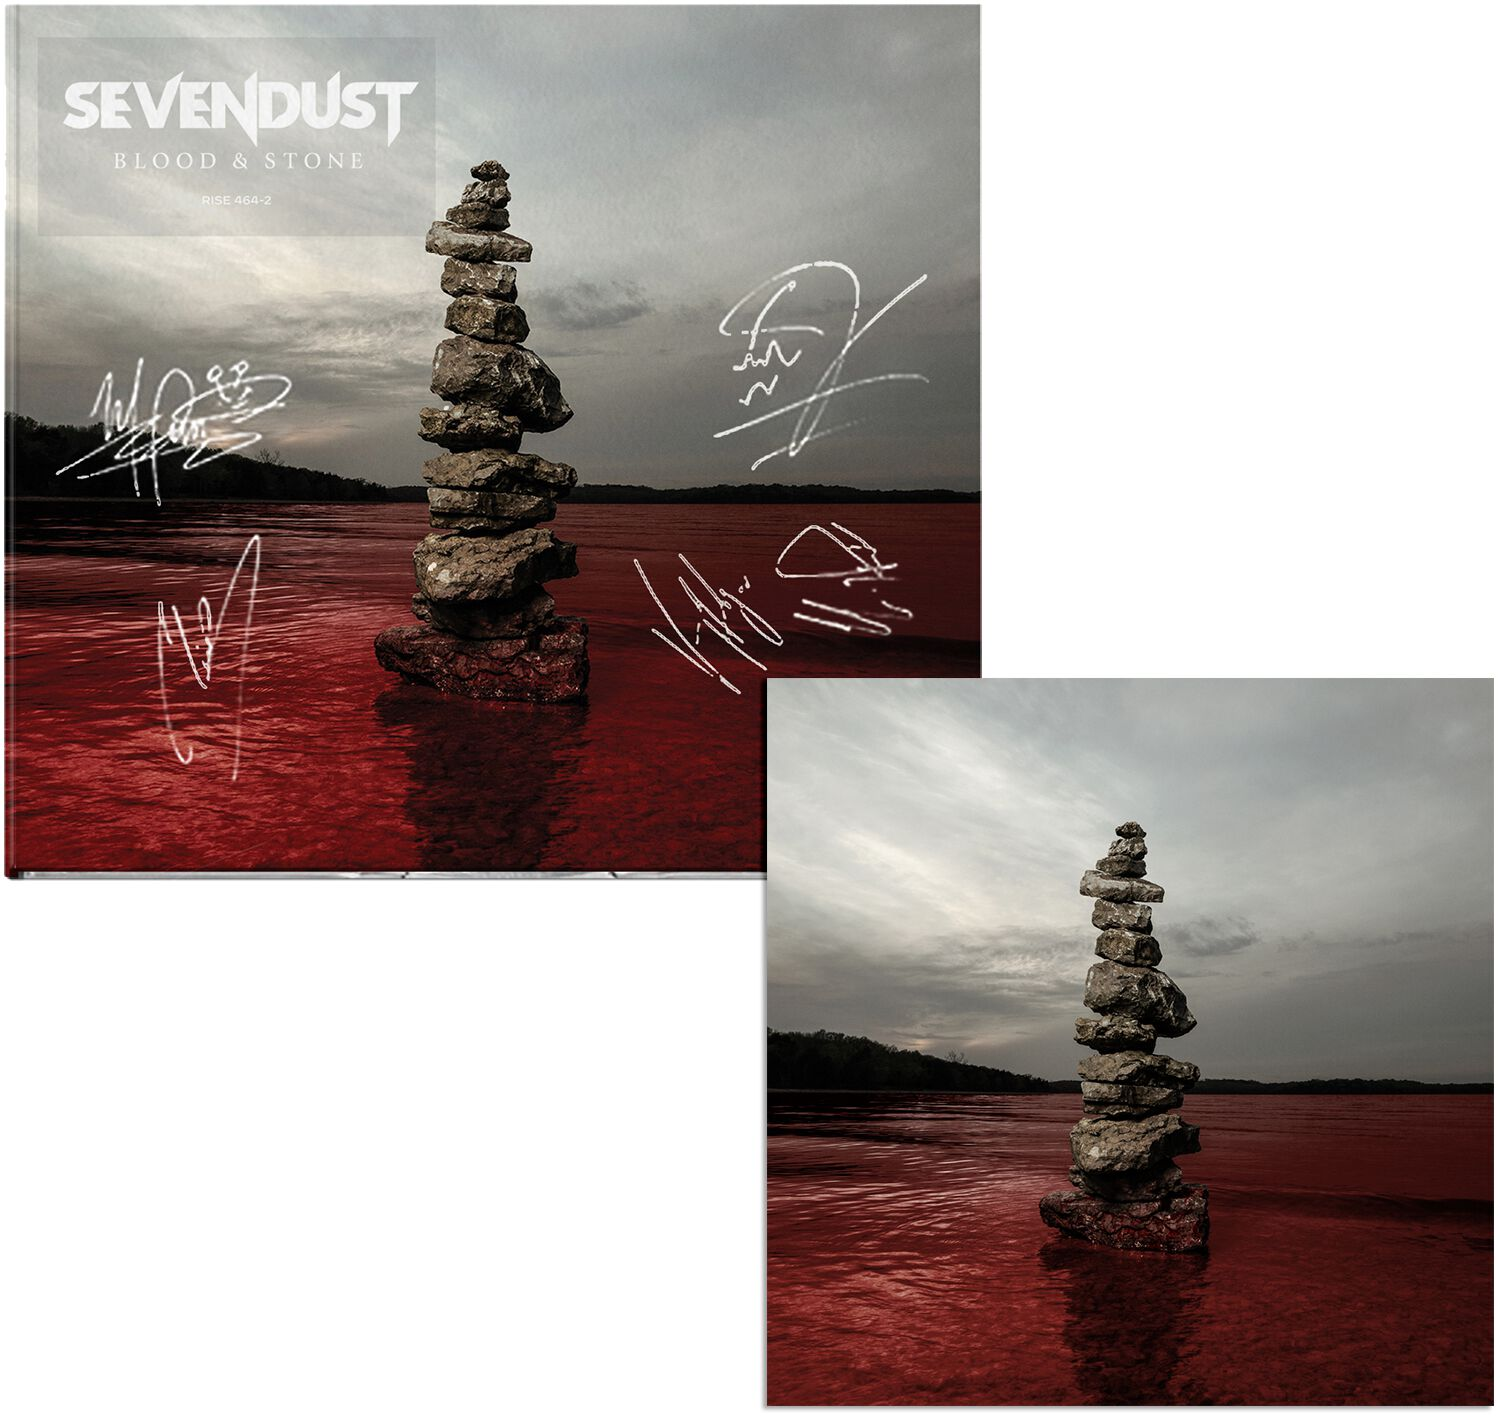 Image of Sevendust Blood & stone CD & Booklet Standard